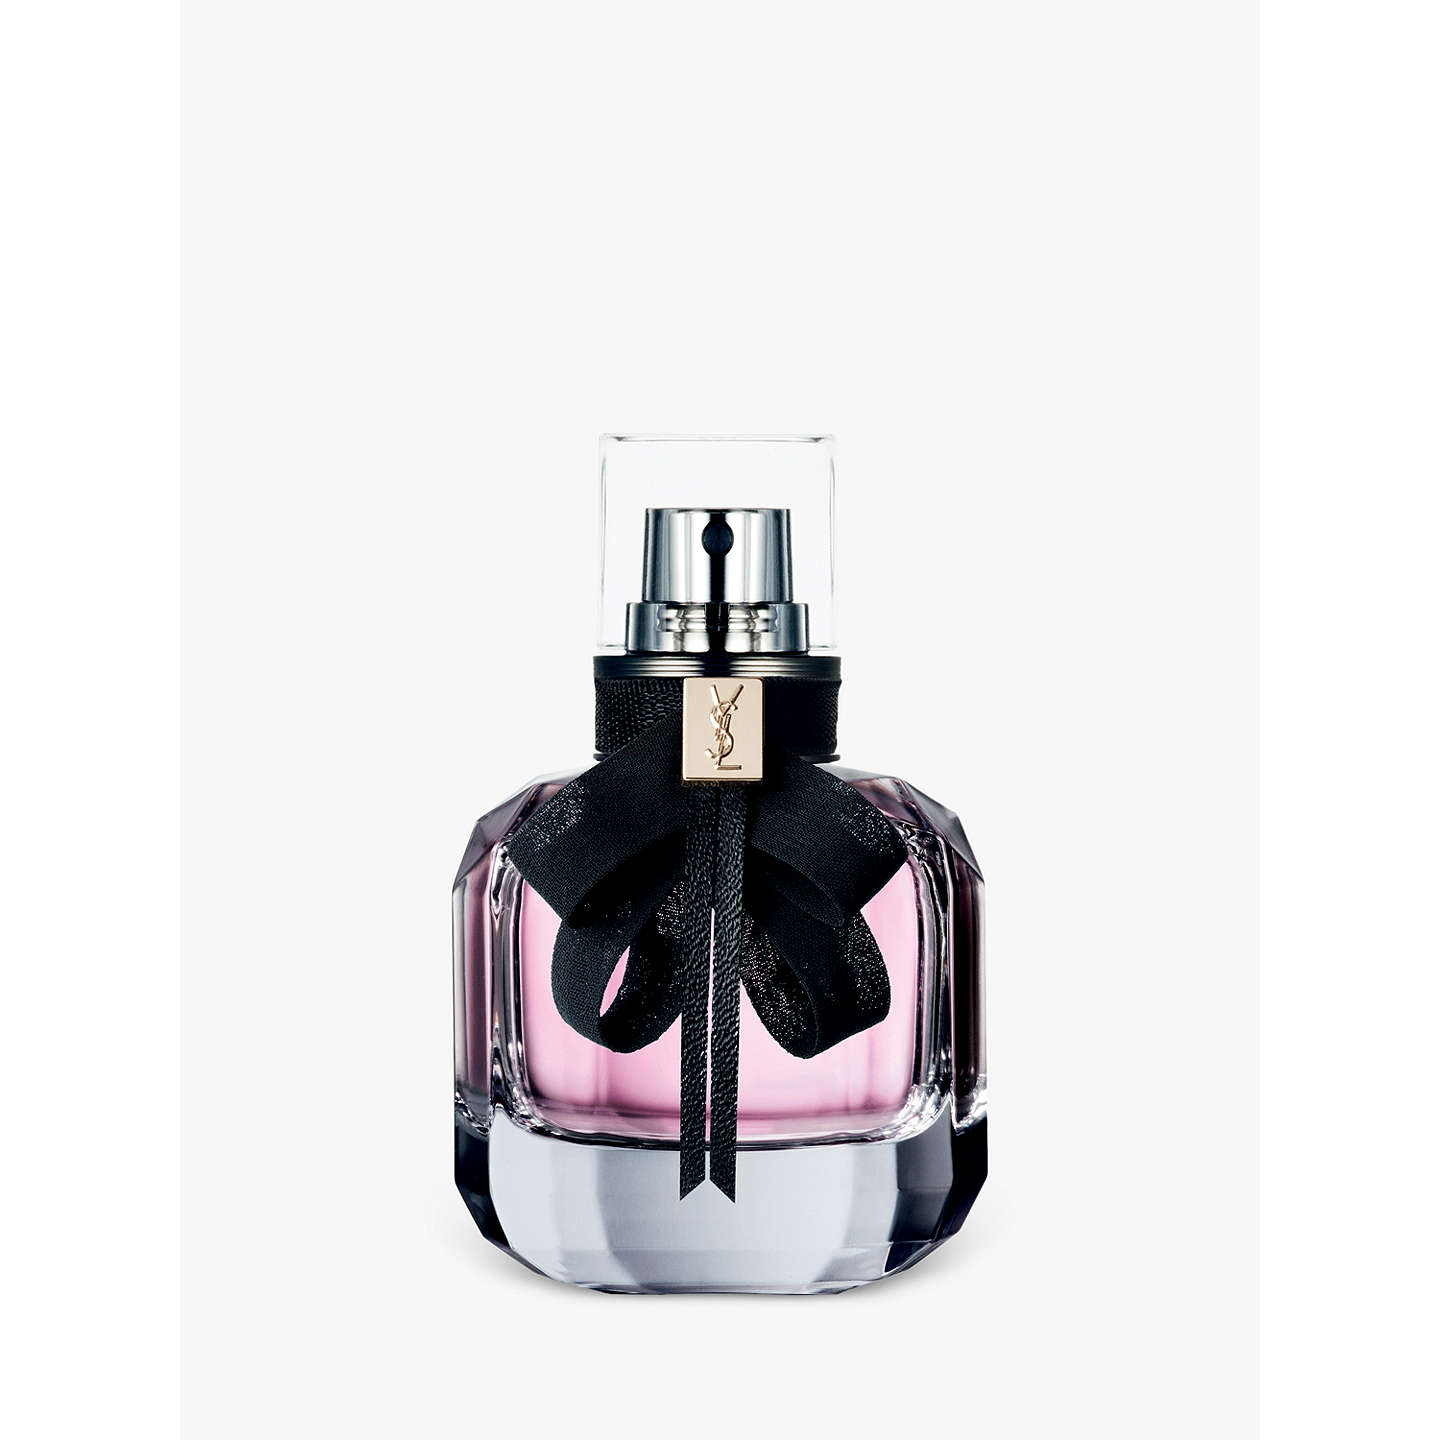 BuyYves Saint Laurent Mon Paris Eau de Parfum, 30ml Online at johnlewis.com